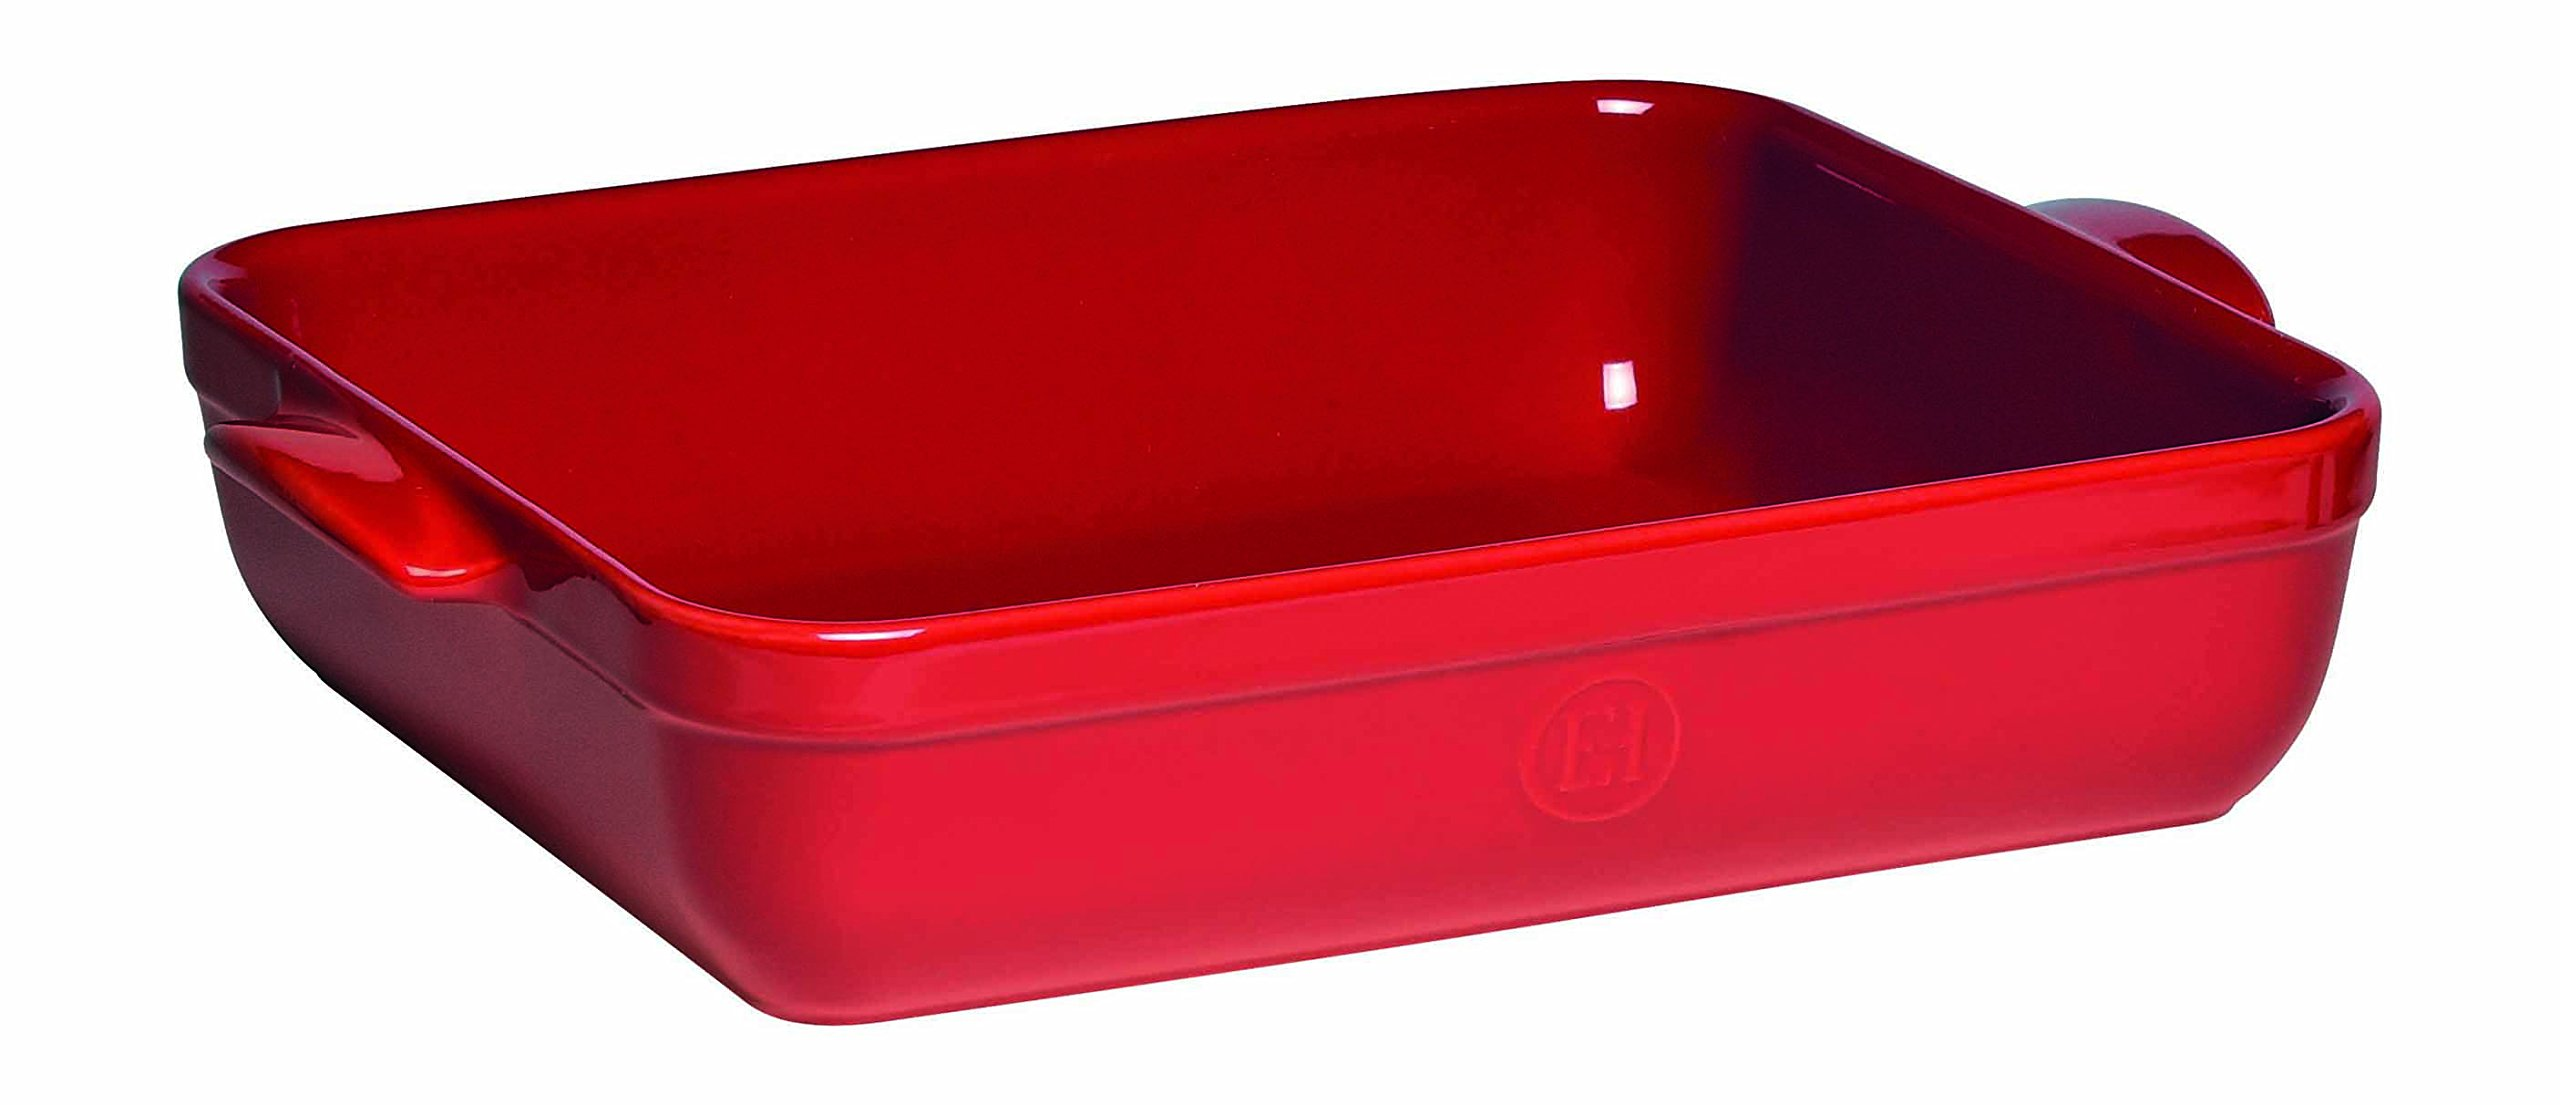 Emile Henry Made In France Lasagna/Roasting Dish 13.75'' x 10''x 2.75'' Burgundy Red